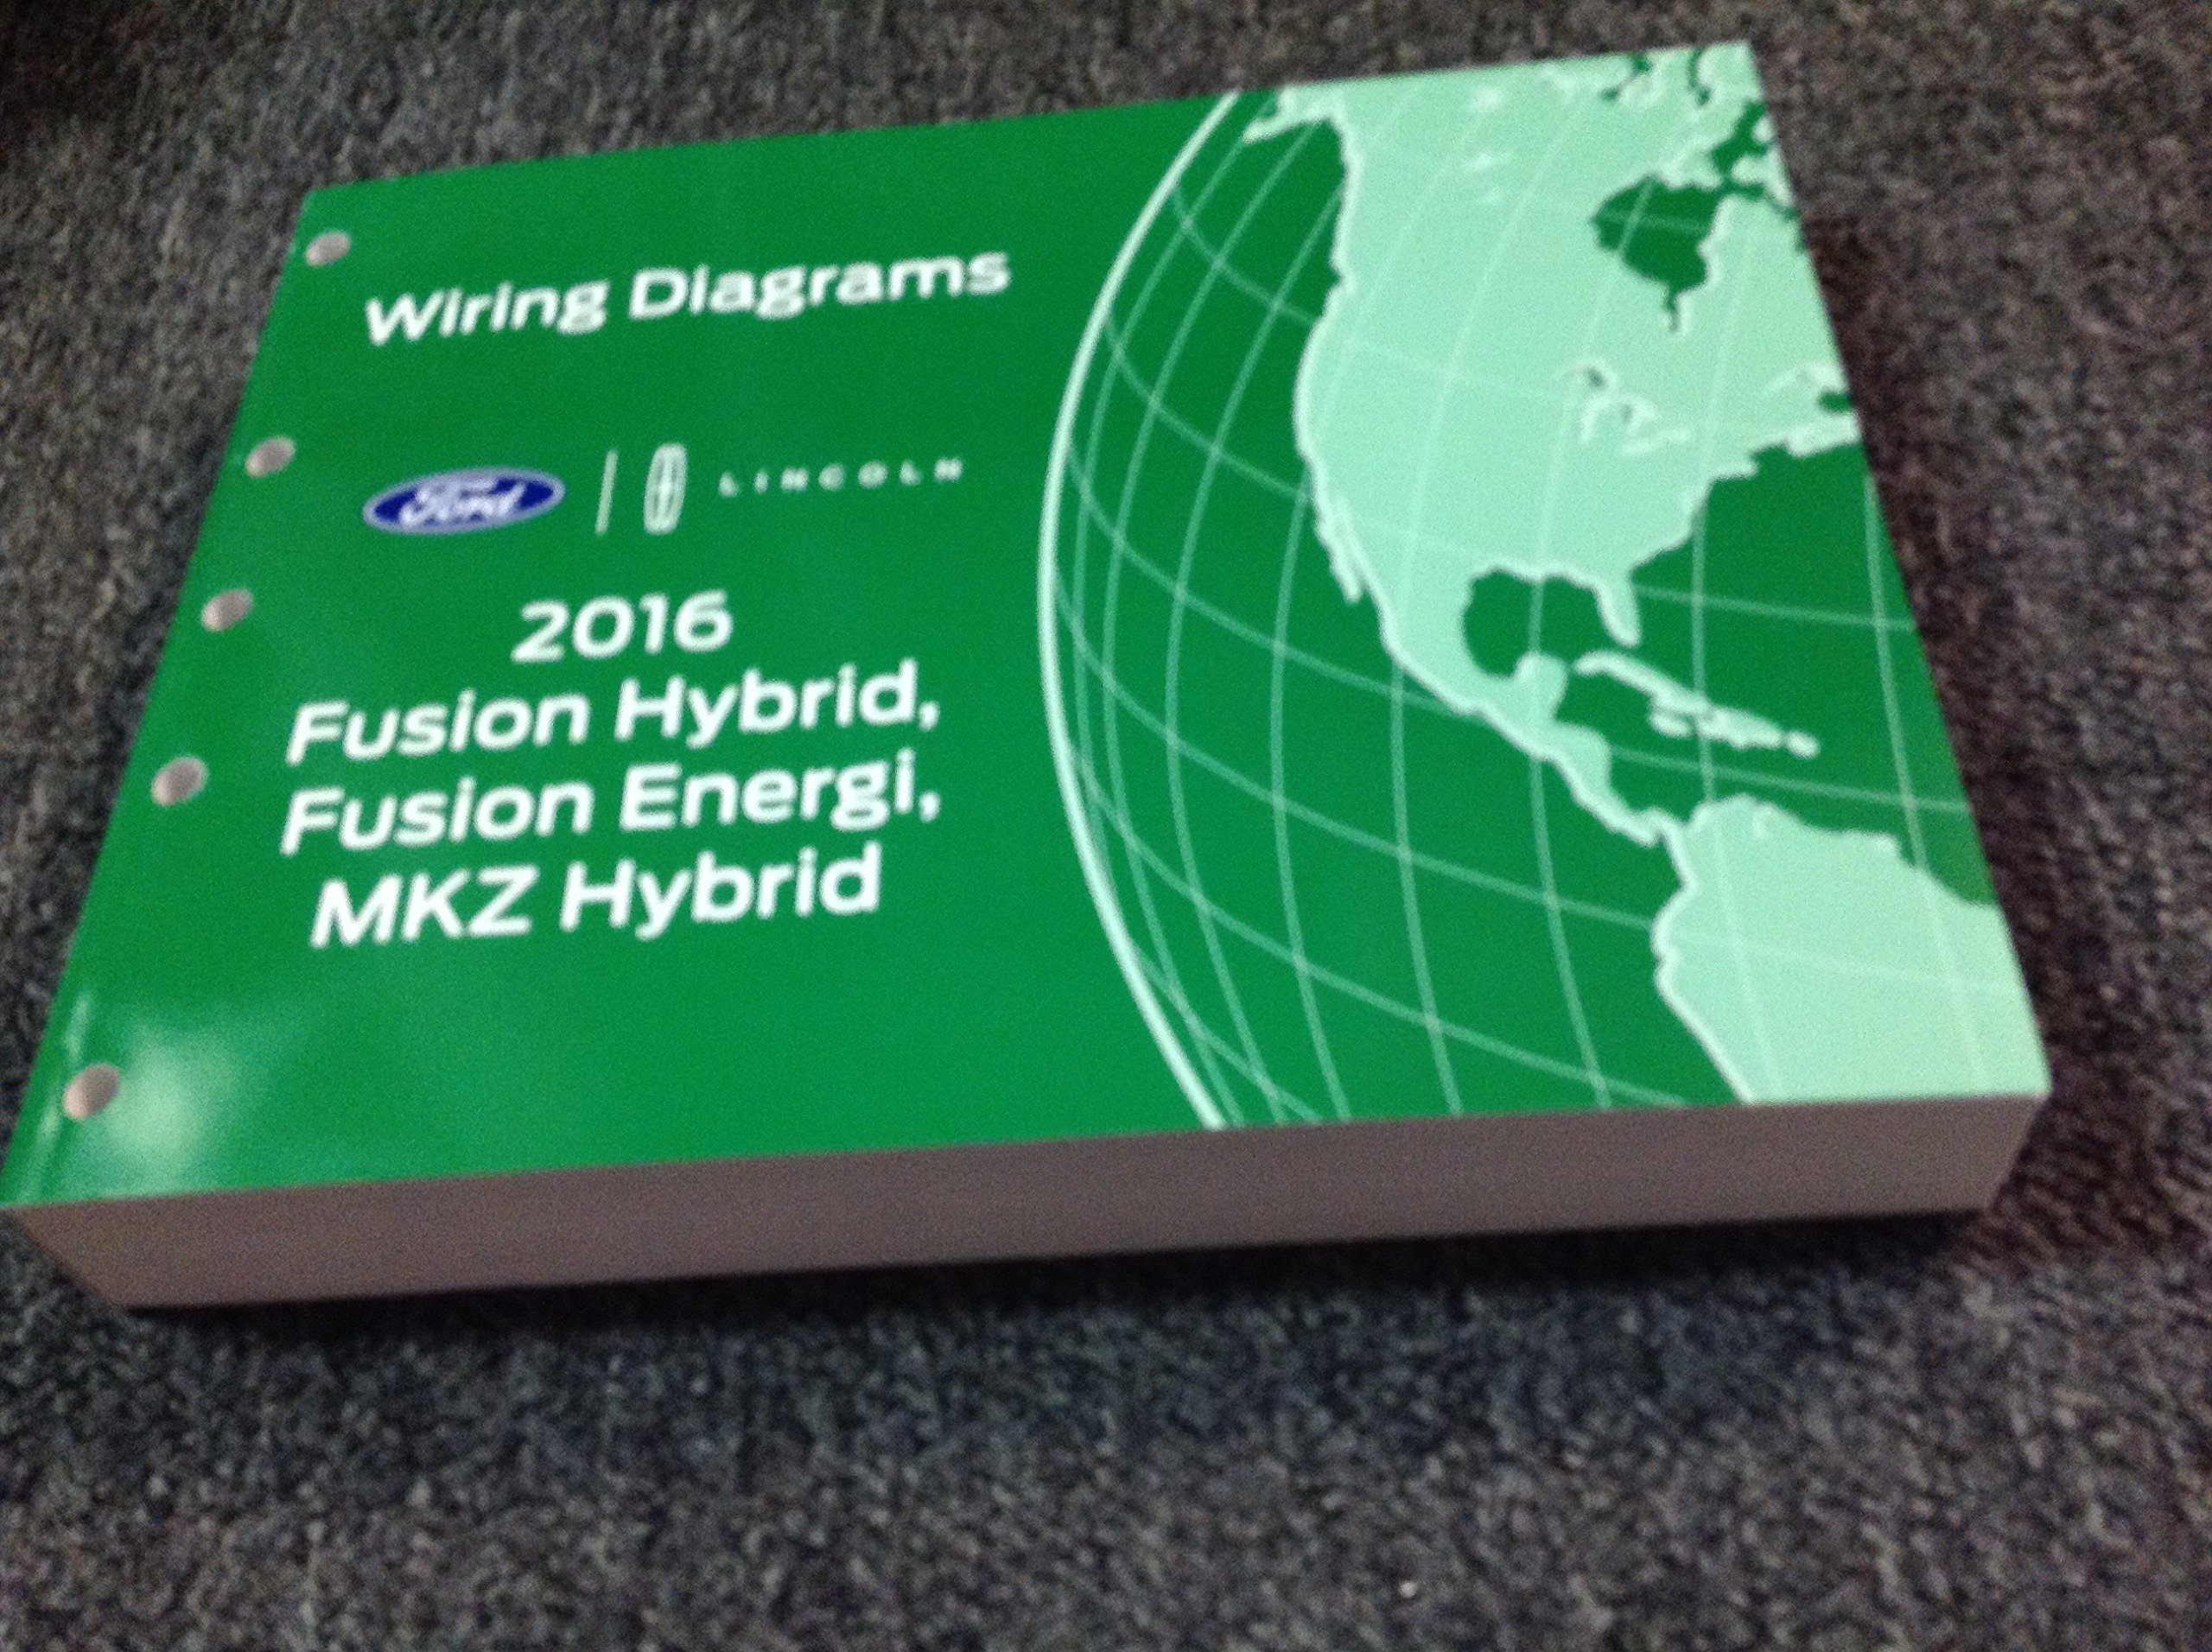 2016 ford fusion lincoln mkz wiring diagram manual original paperback – 2016